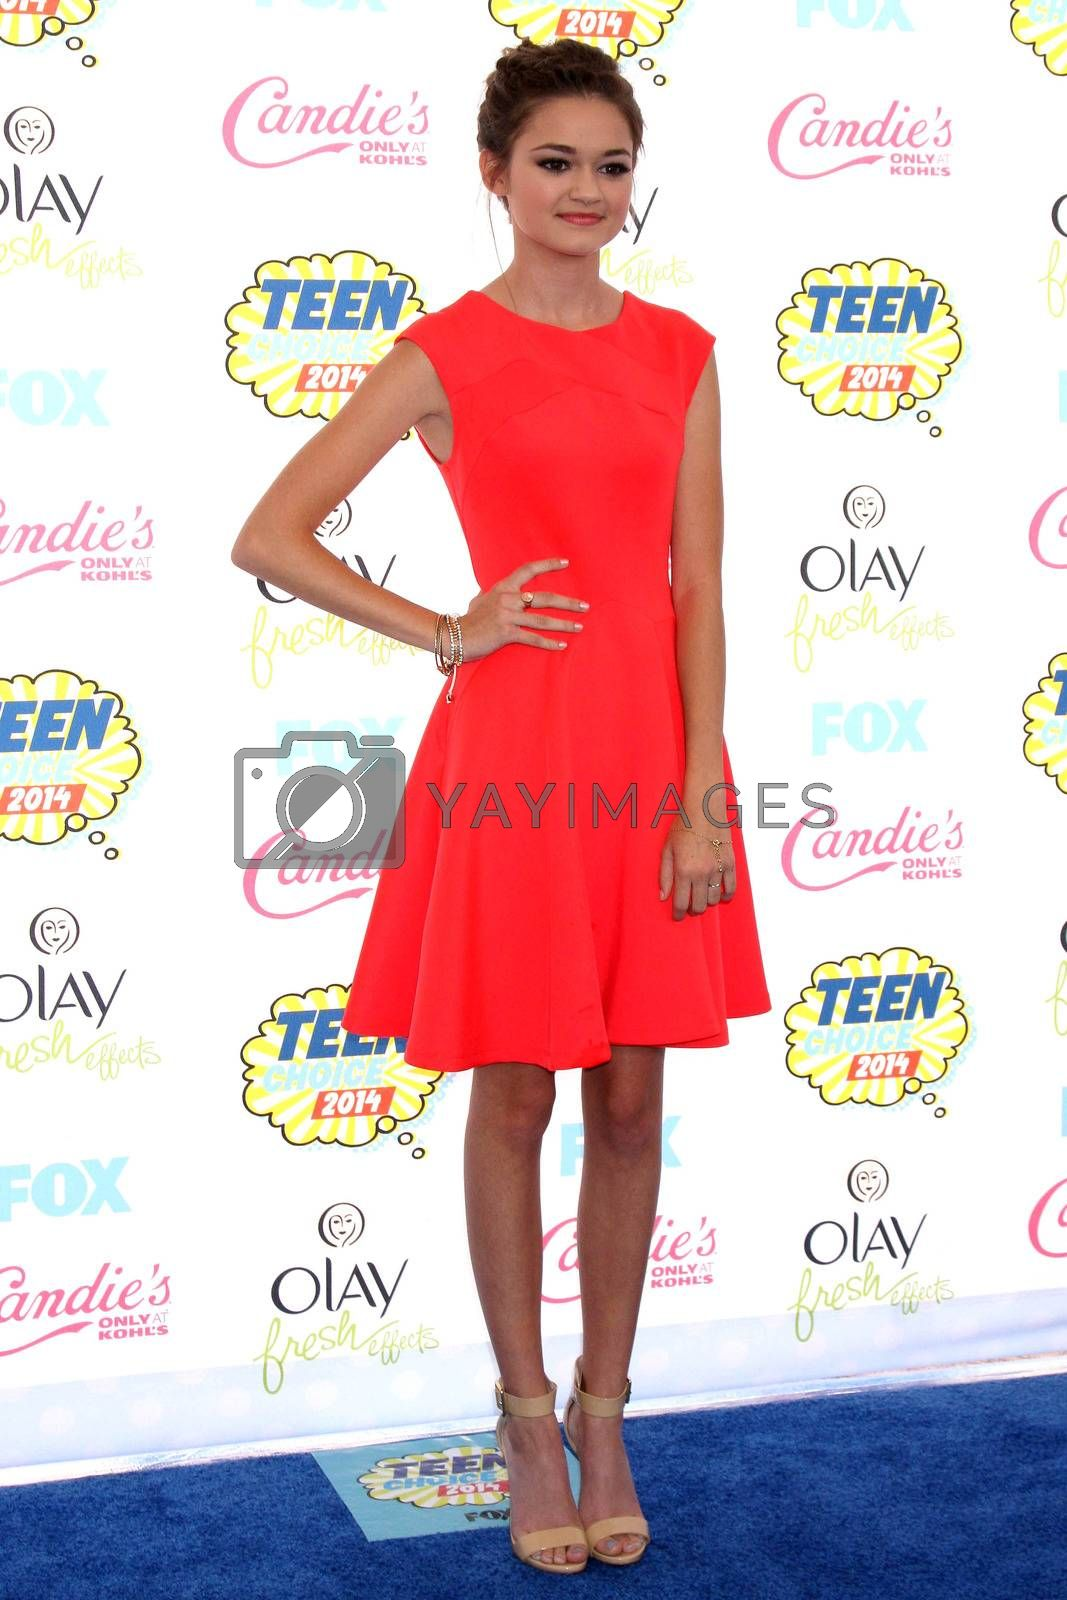 Royalty free image of Ciara Bravo at the 2014 Teen Choice Awards Arrivals, Shrine Auditorium, Los Angeles, CA 08-10-14/ImageCollect by ImageCollect